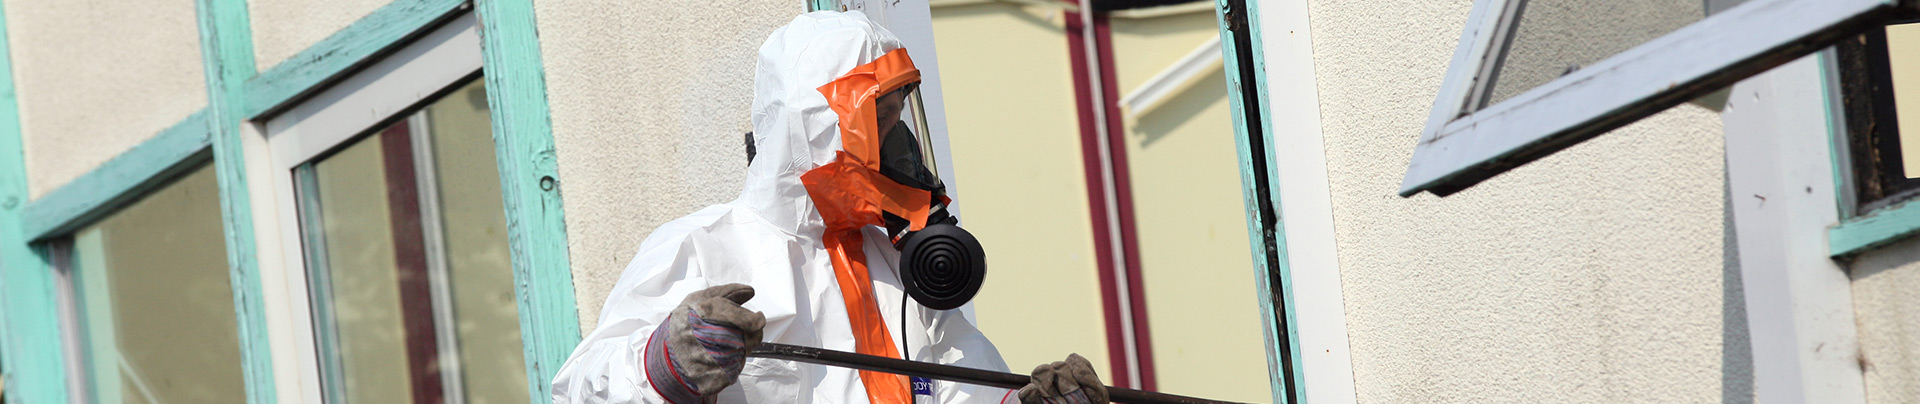 Asbestos Removal And Decontamination